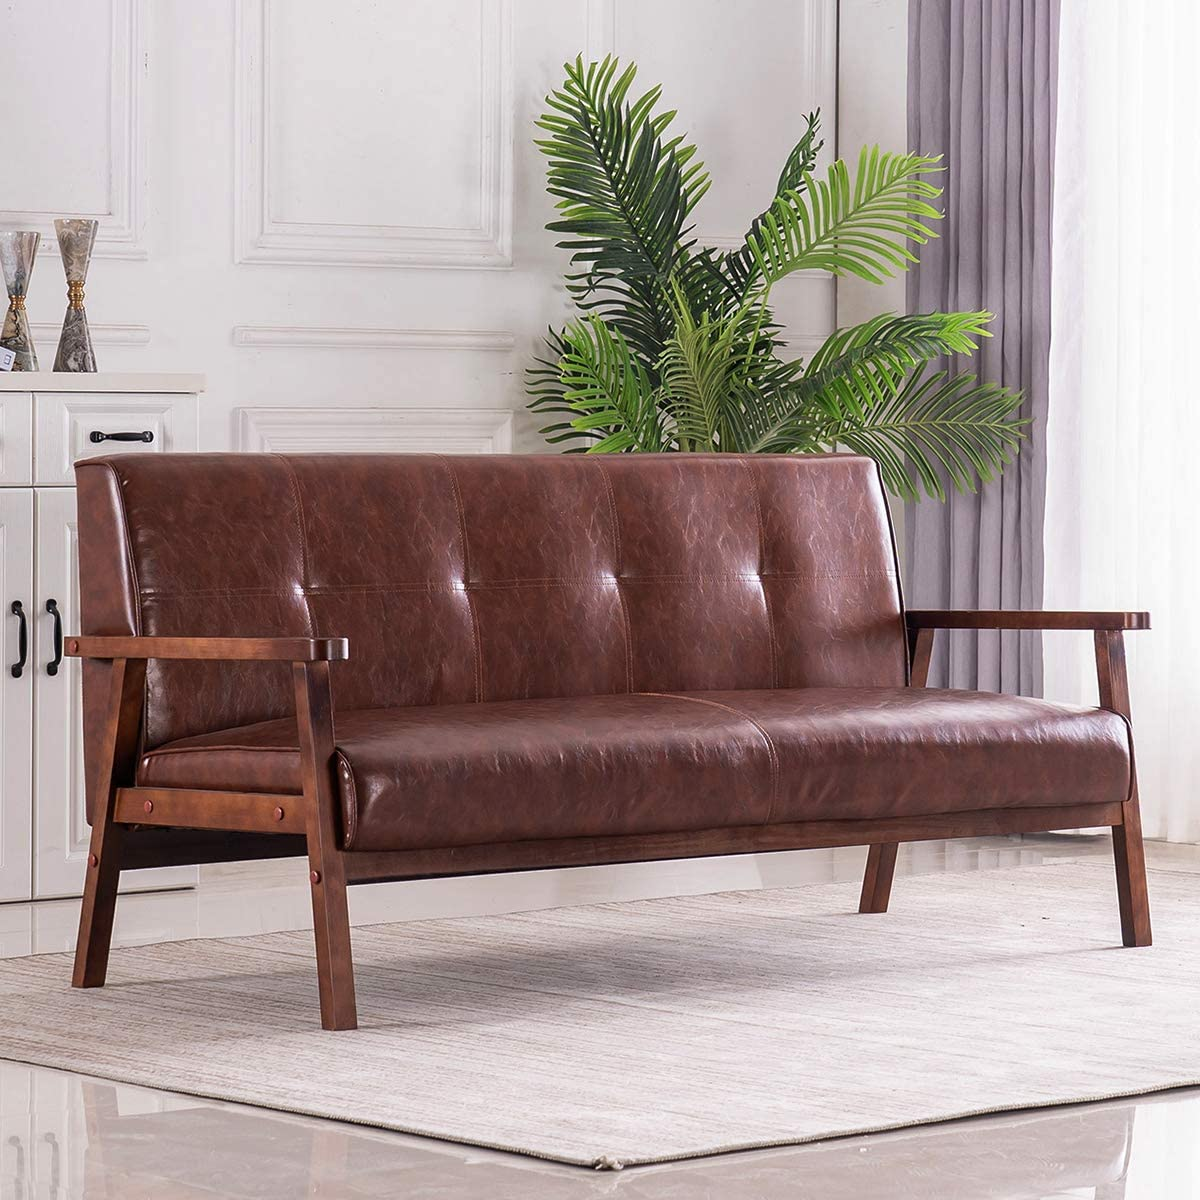 Mid-Century Retro Modern Faux Leather Upholstered Wooden 3-Seater Sofa (Brown)